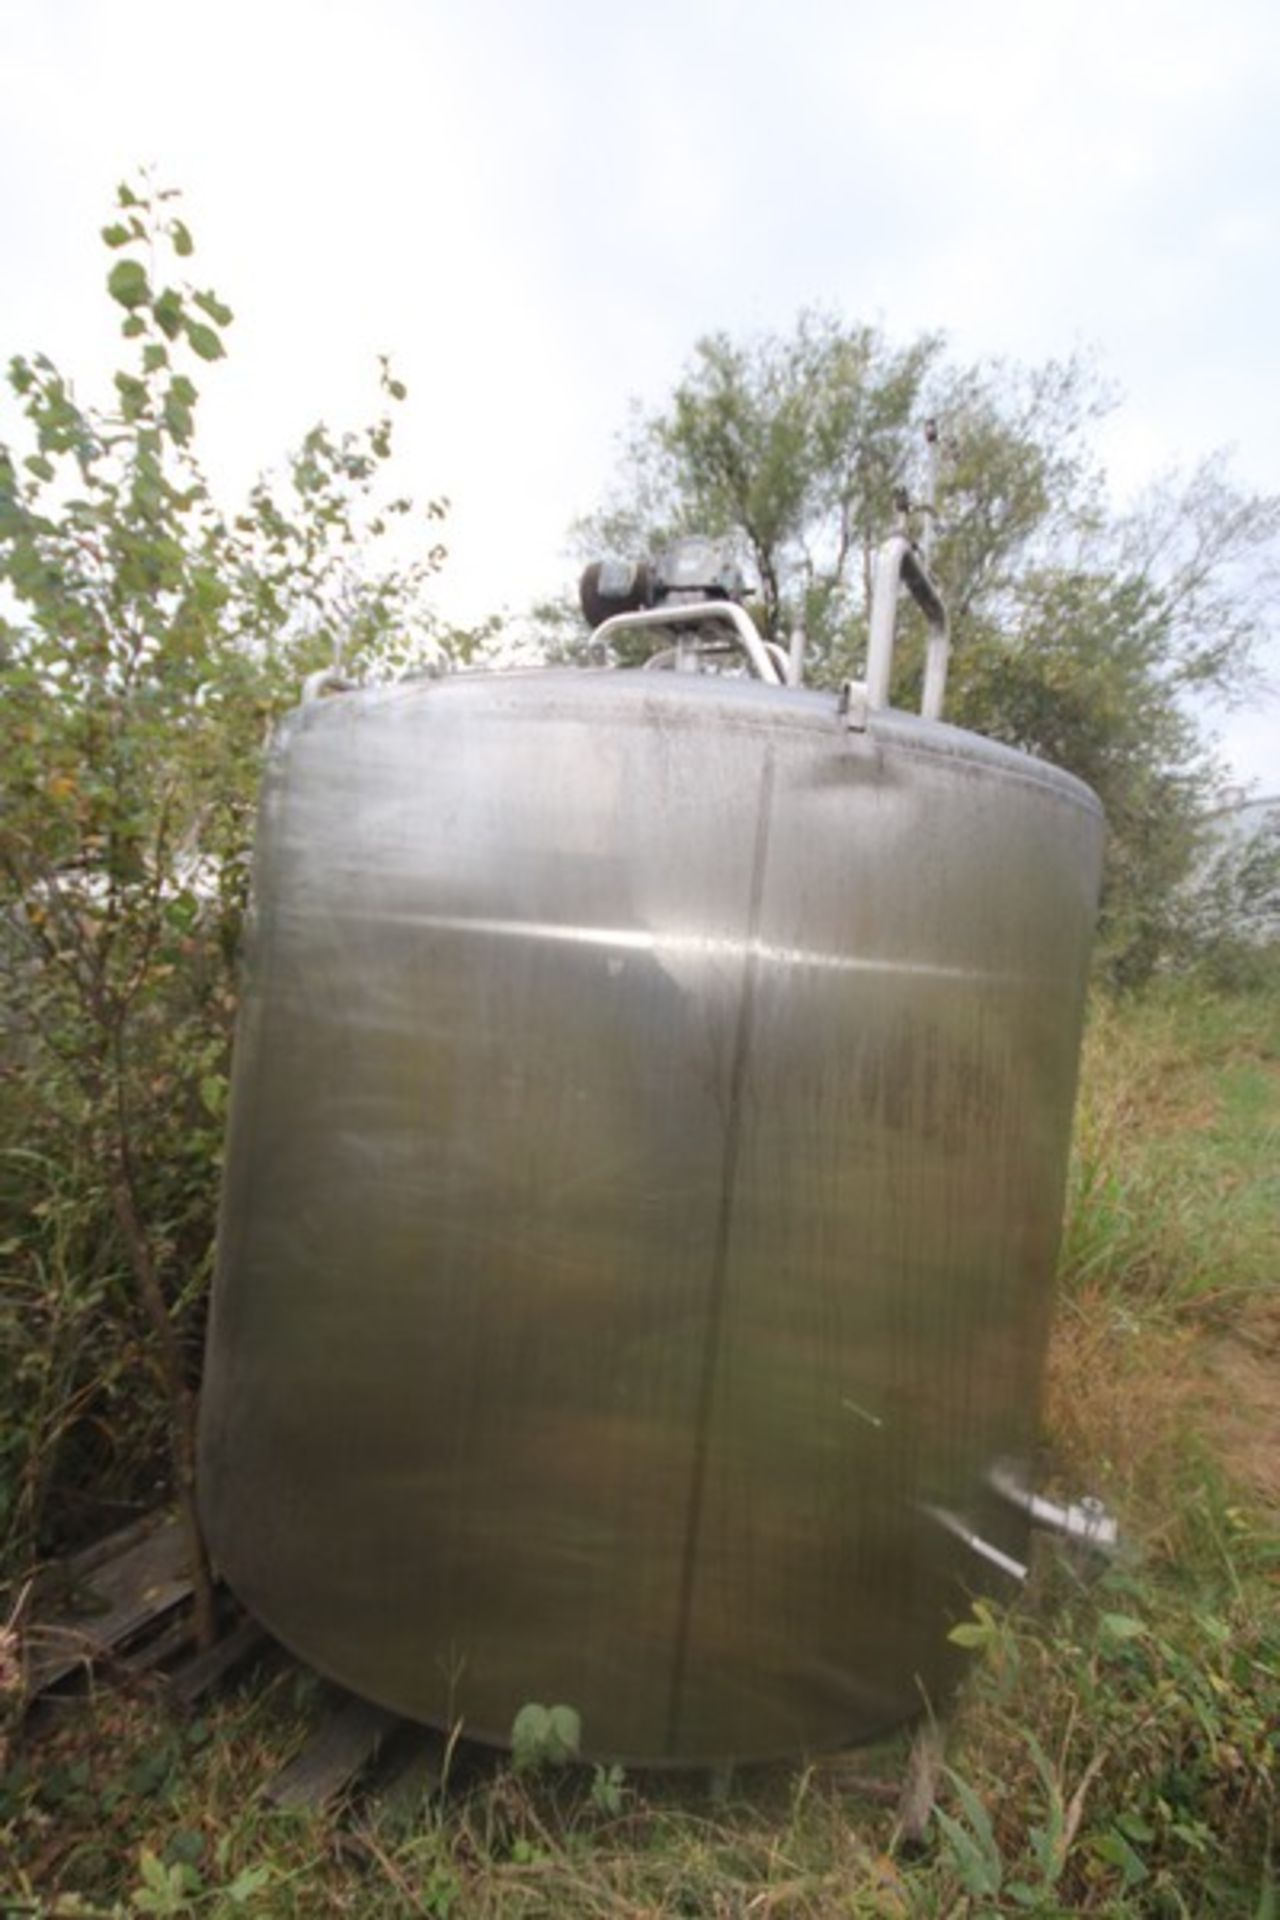 """Aprox. 2,300 Gal. S/S Processor, Tank Dims.: Aprox. 8' Diameter x 76"""" Straight Side, Dish Top, - Image 3 of 6"""